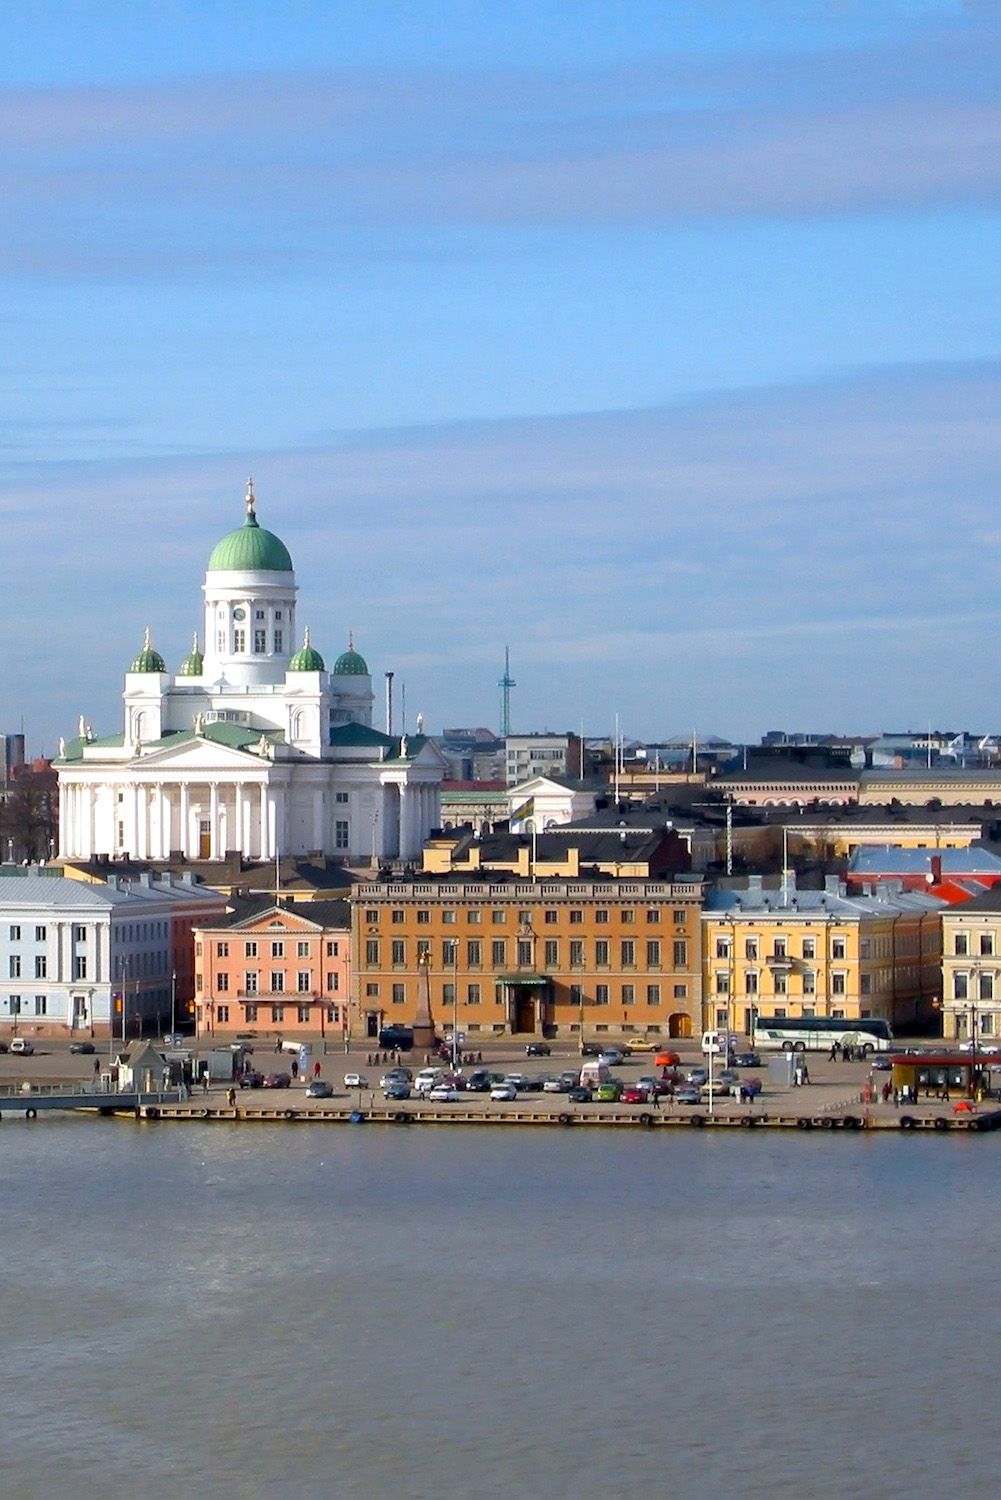 Helsinki via Wikimedia Commons user Ilmari Karonen